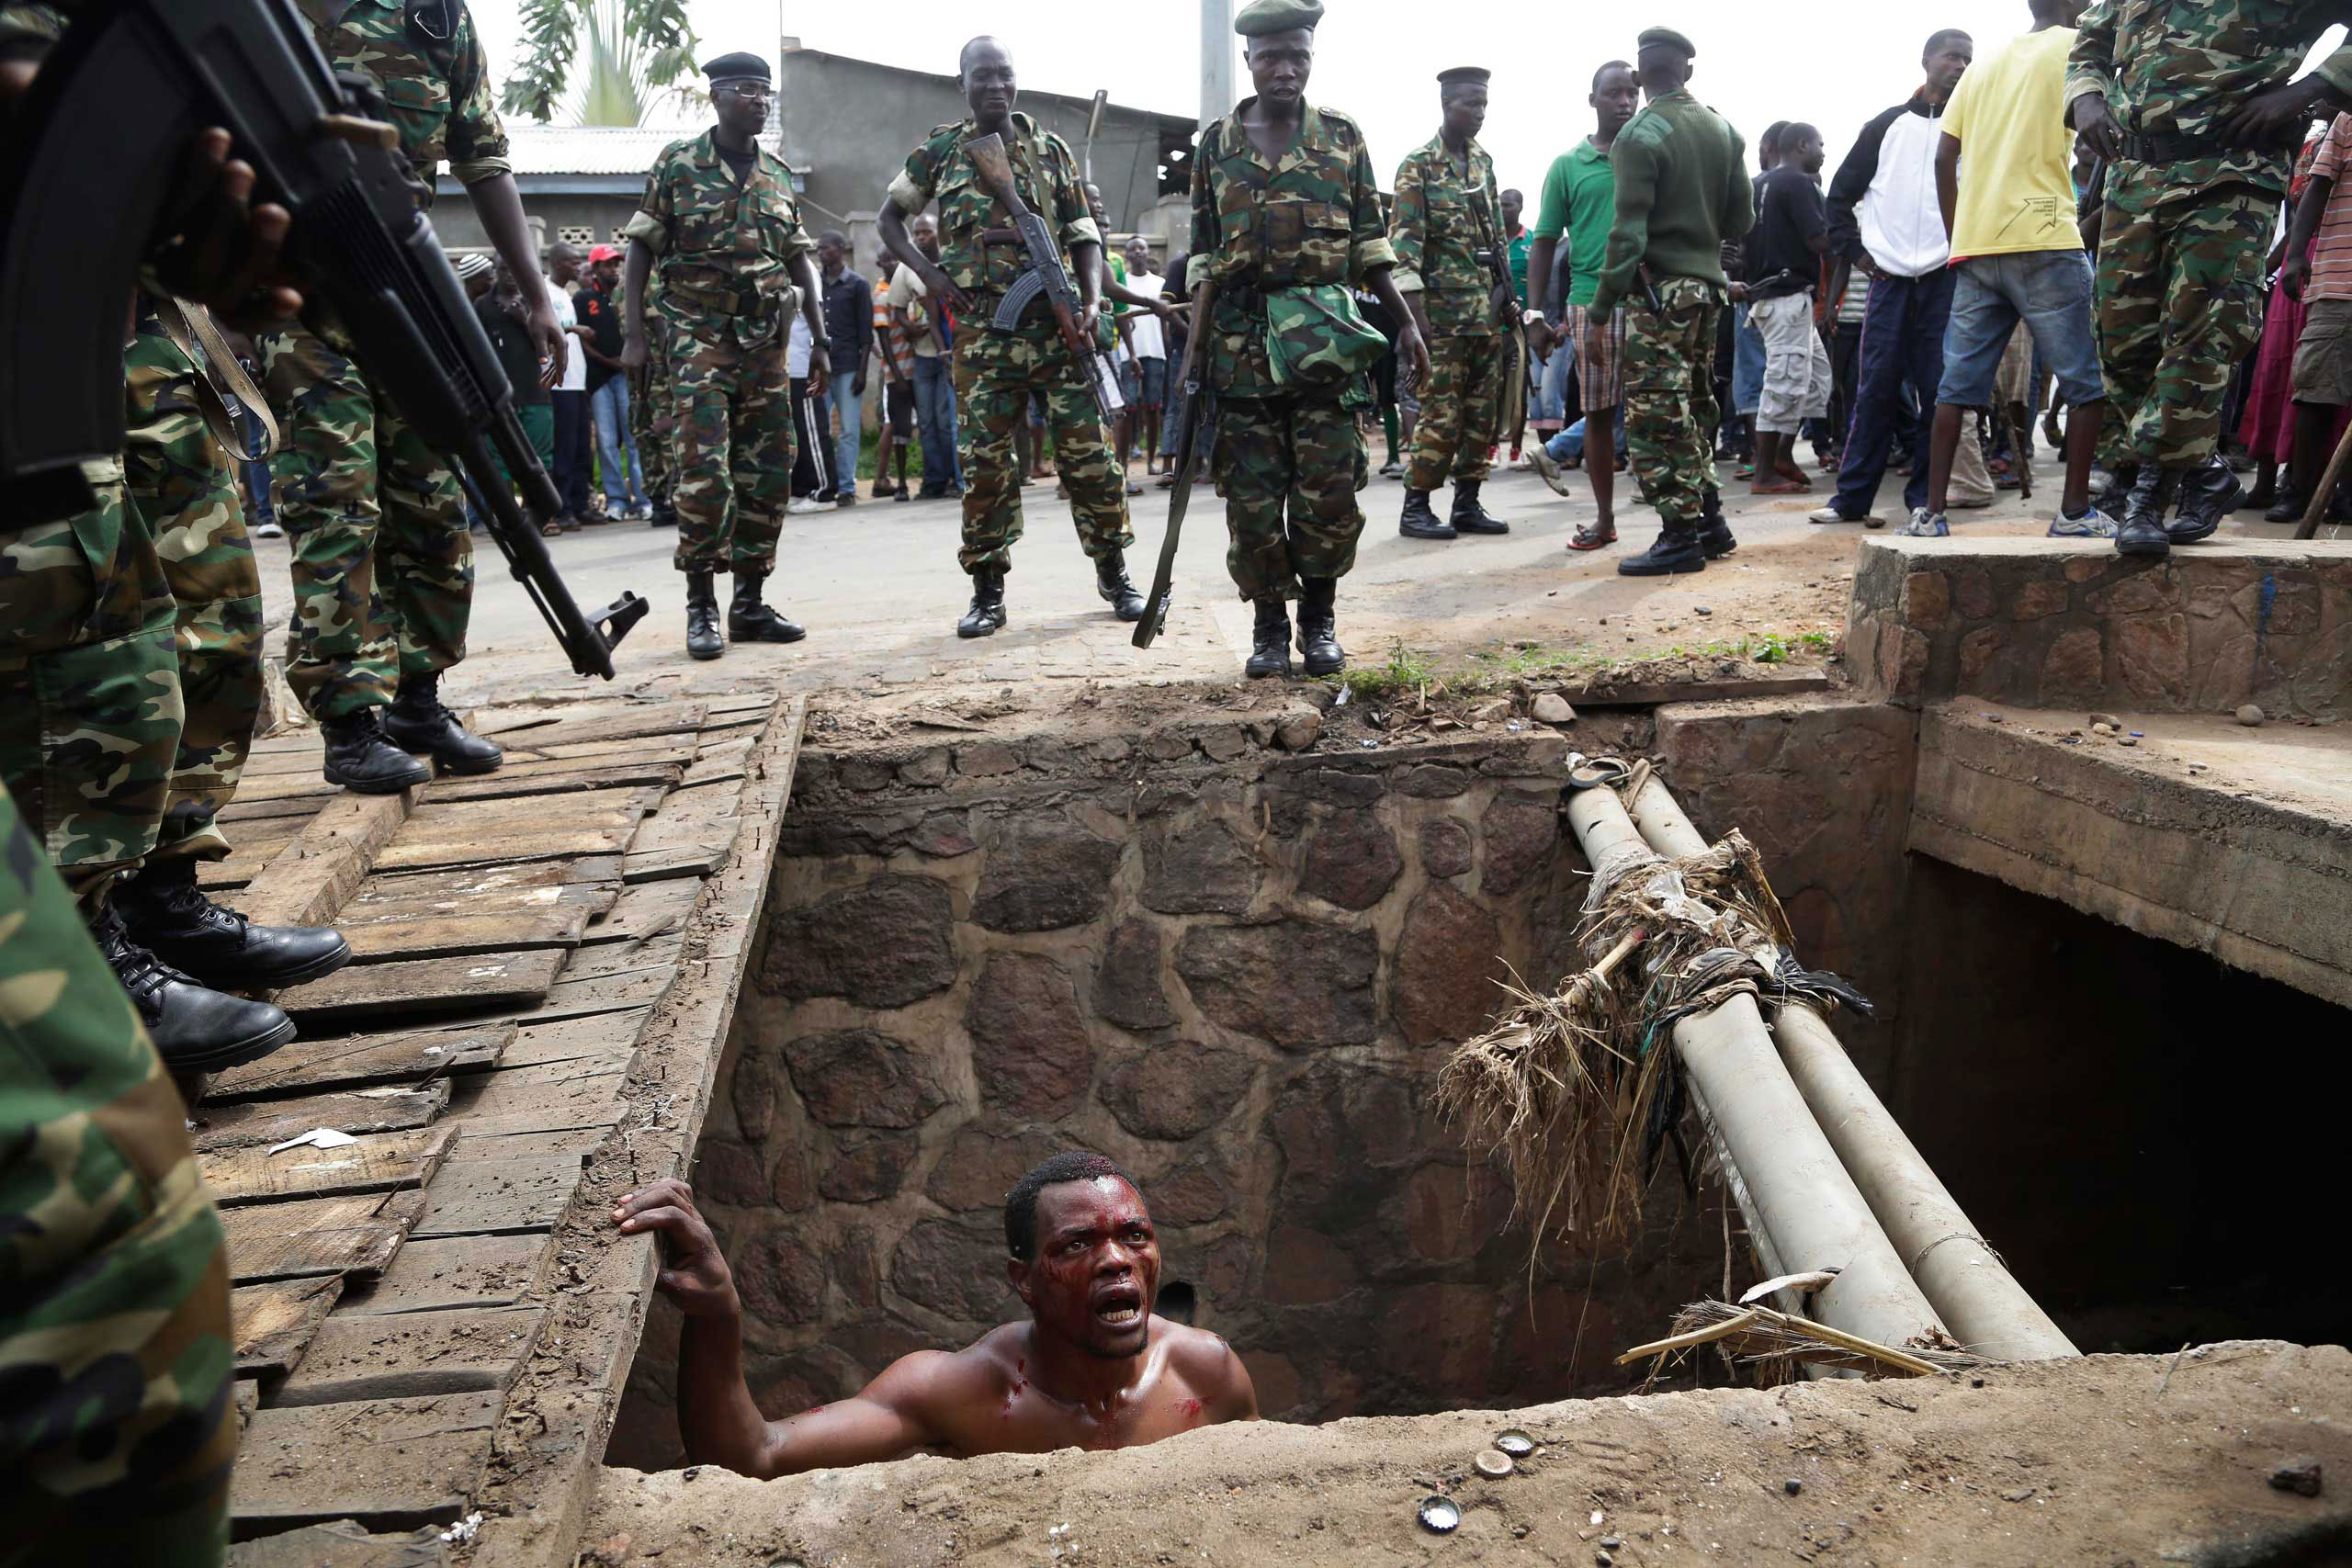 Jean Claude Niyonzima, a suspected member of the ruling party's Imbonerakure youth militia, pleads with soldiers to protect him from a mob of demonstrators after he emerged from hiding in a sewer in the Cibitoke district of Bujumbura, Burundi. Niyonzima escaped the lynching by running into the sewer. May 7, 2015.